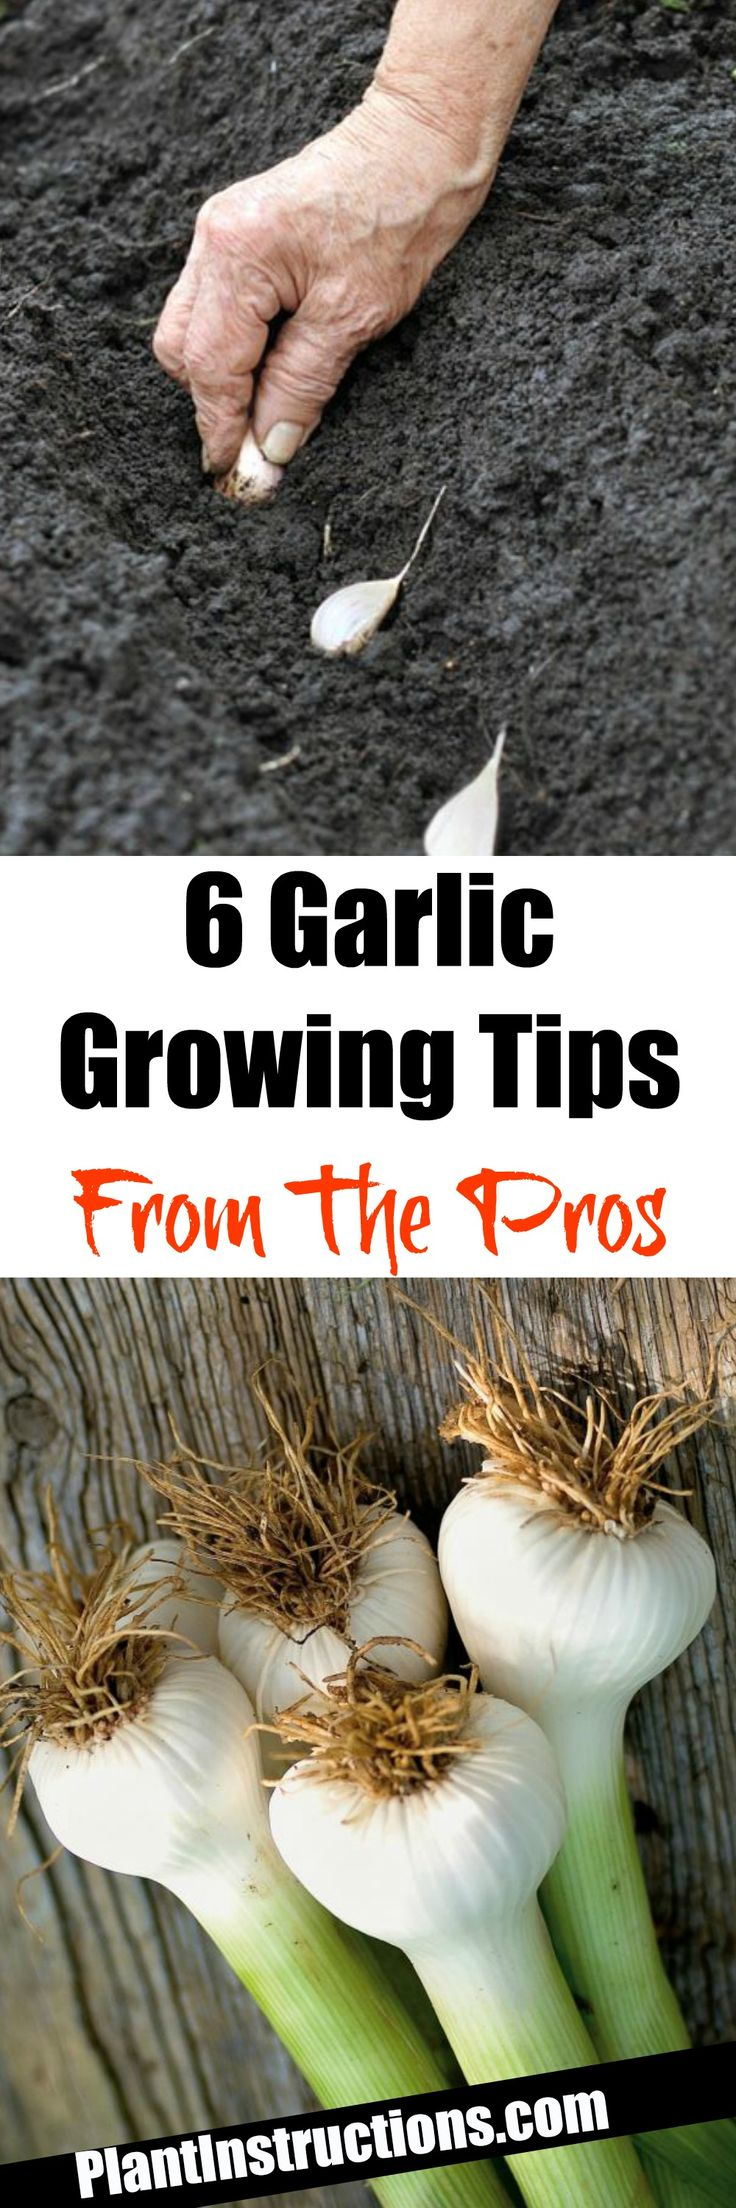 Garlic Growing Tips